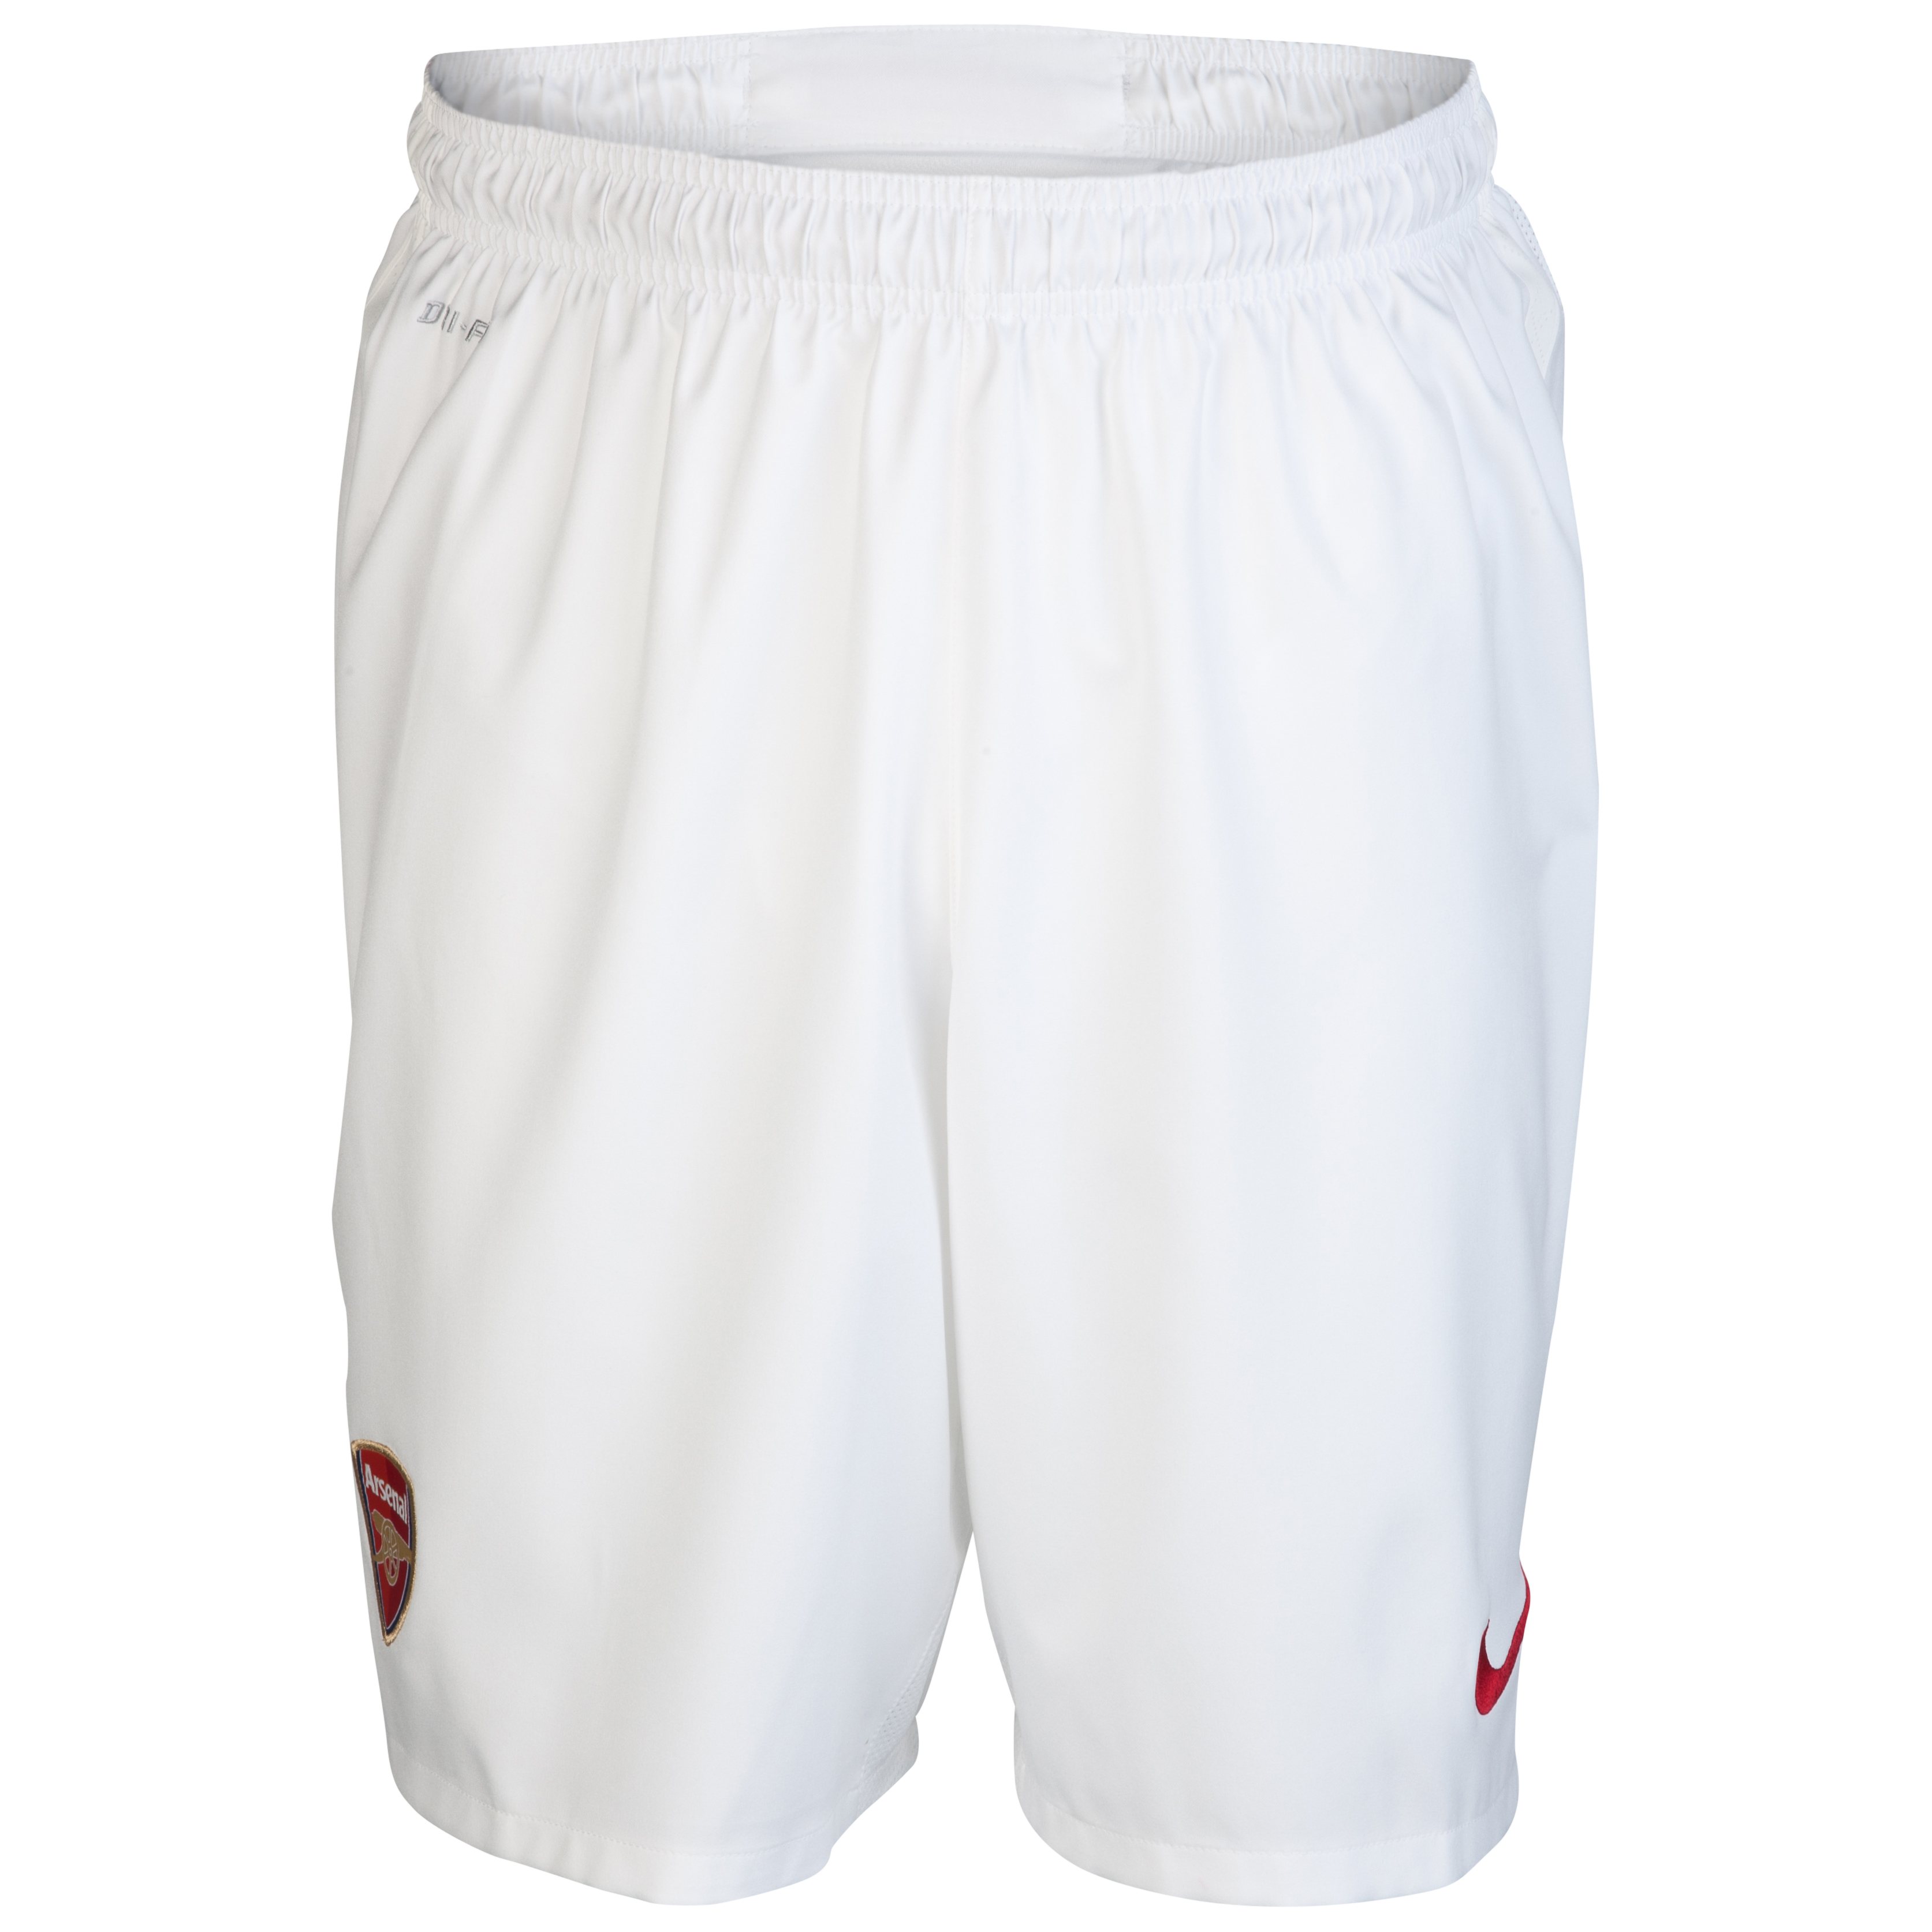 Arsenal Home Shorts 2012/14